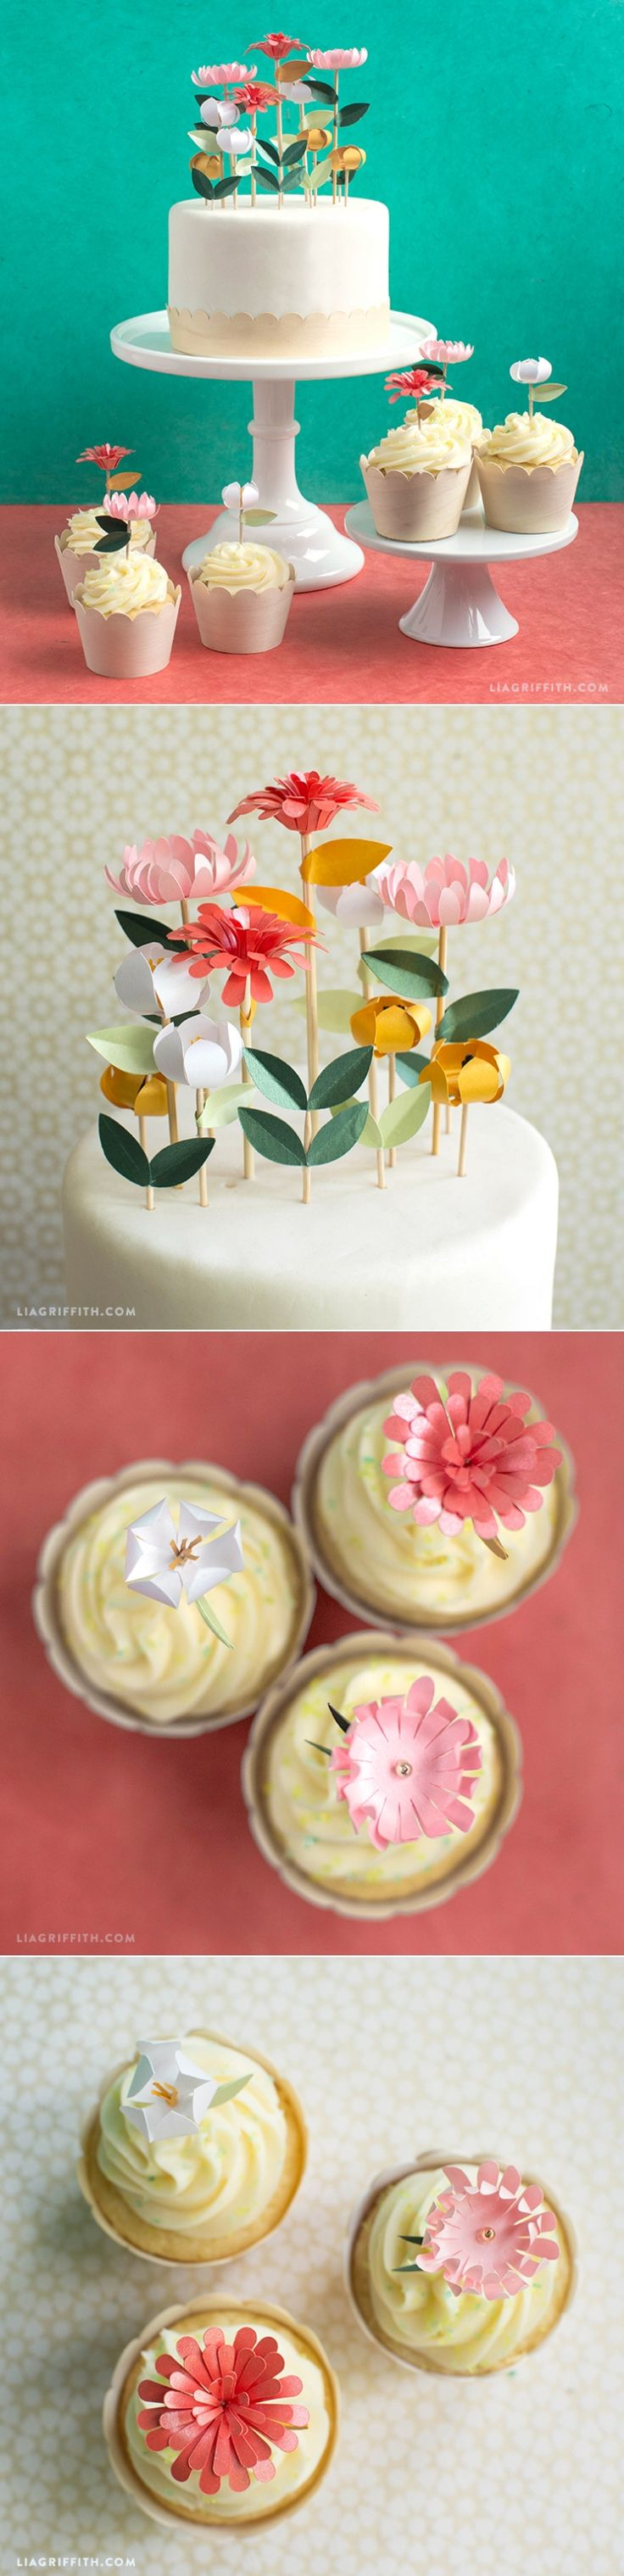 You can make this! Pattern at www.LiaGriffith.com #PaperFlowers